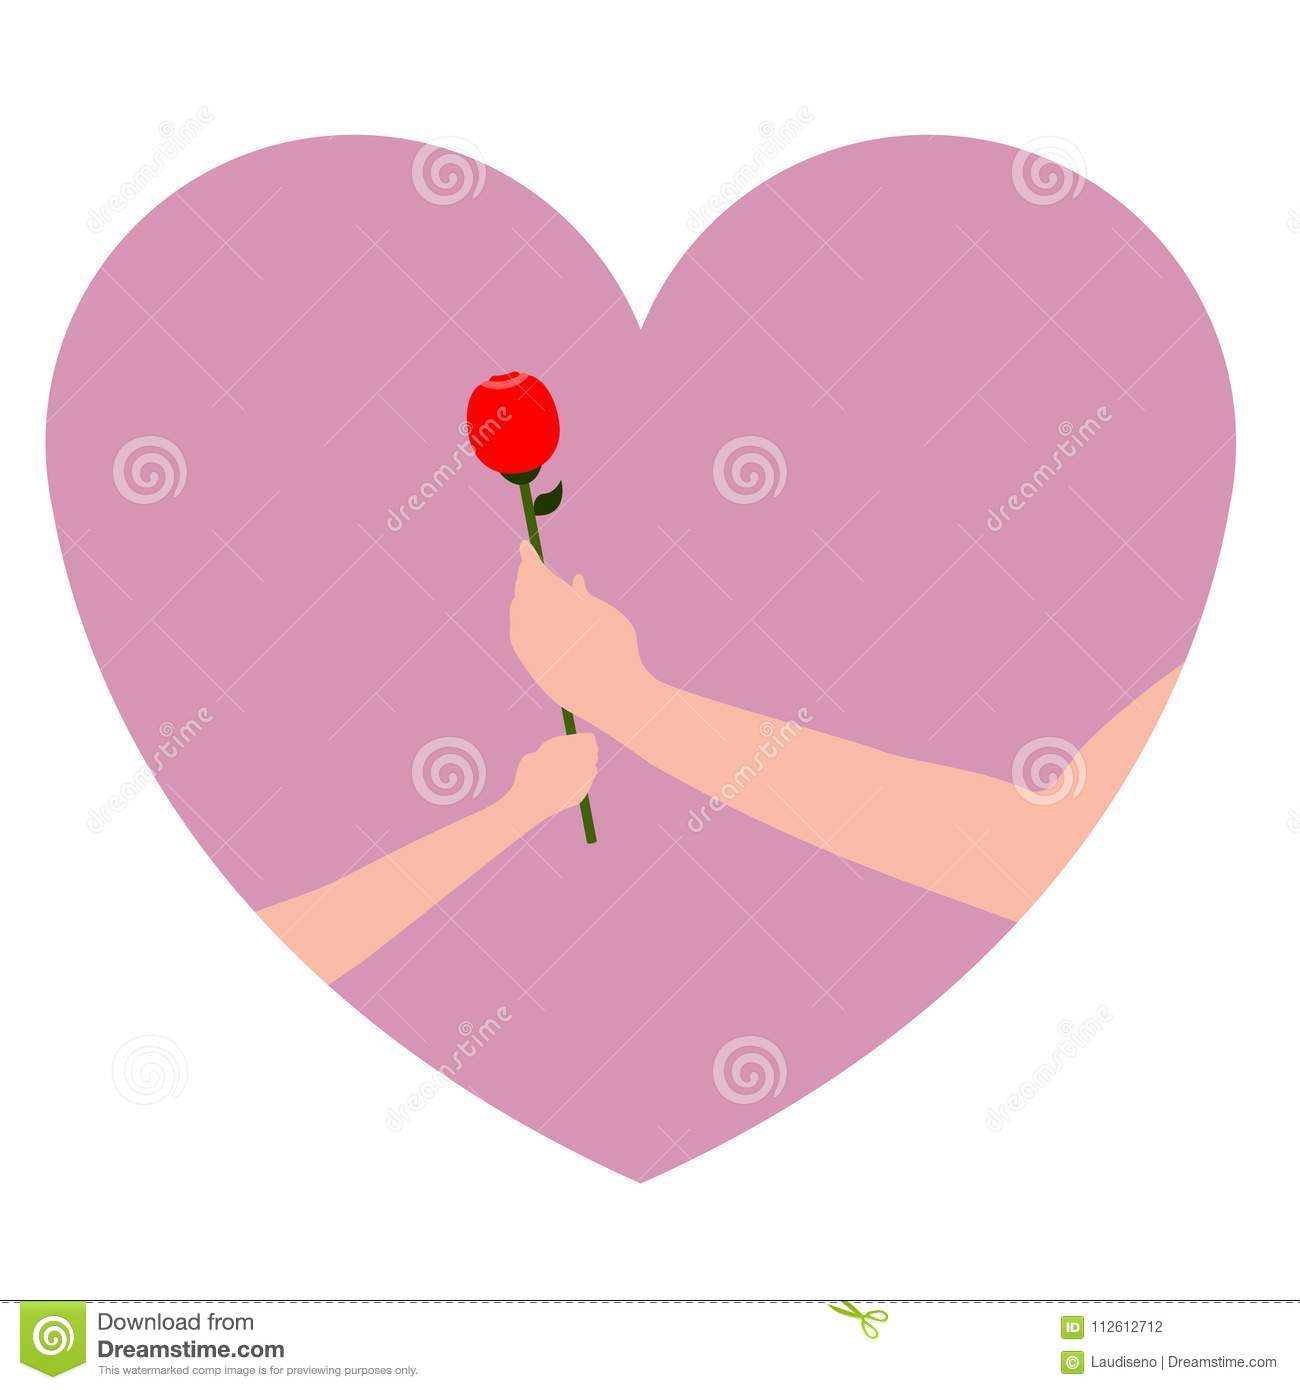 Pair of hands holding a rose